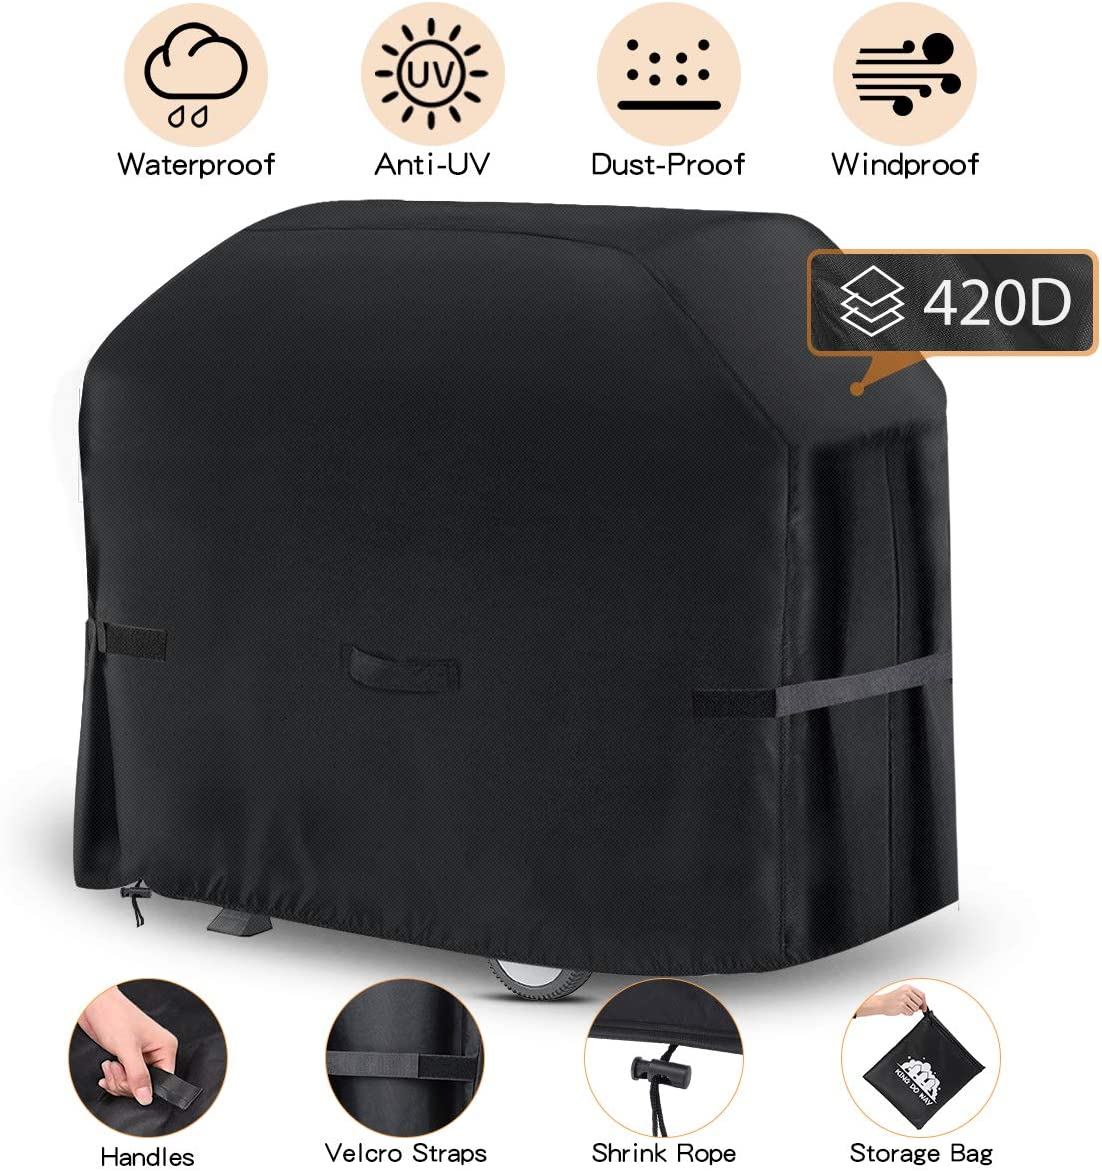 king do way Funda para Barbacoa Impermeable, Cubierta para Barbacoa 420D Oxford, Protector para Barbacoa Anti-Viento/UV/Impermeabilidad para Weber, Brinkmann,Outback,Char Broil, etc (147x61x122cm)